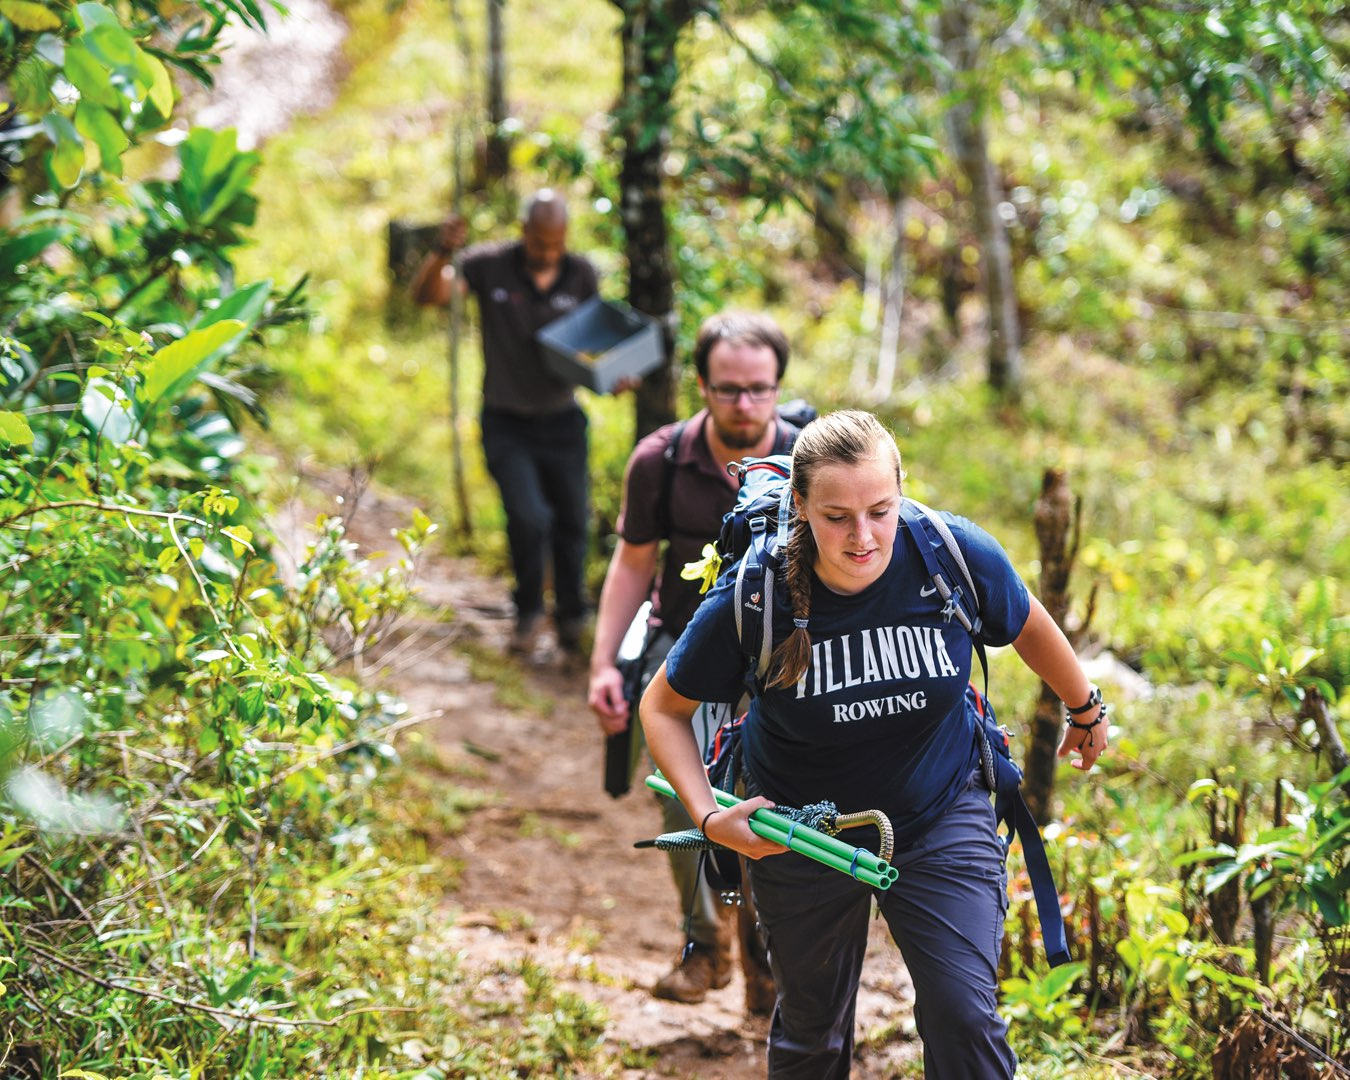 Female student in a Villanova T-shirt carrying water testing equipment and male student walk on a dirt path in Madagascar